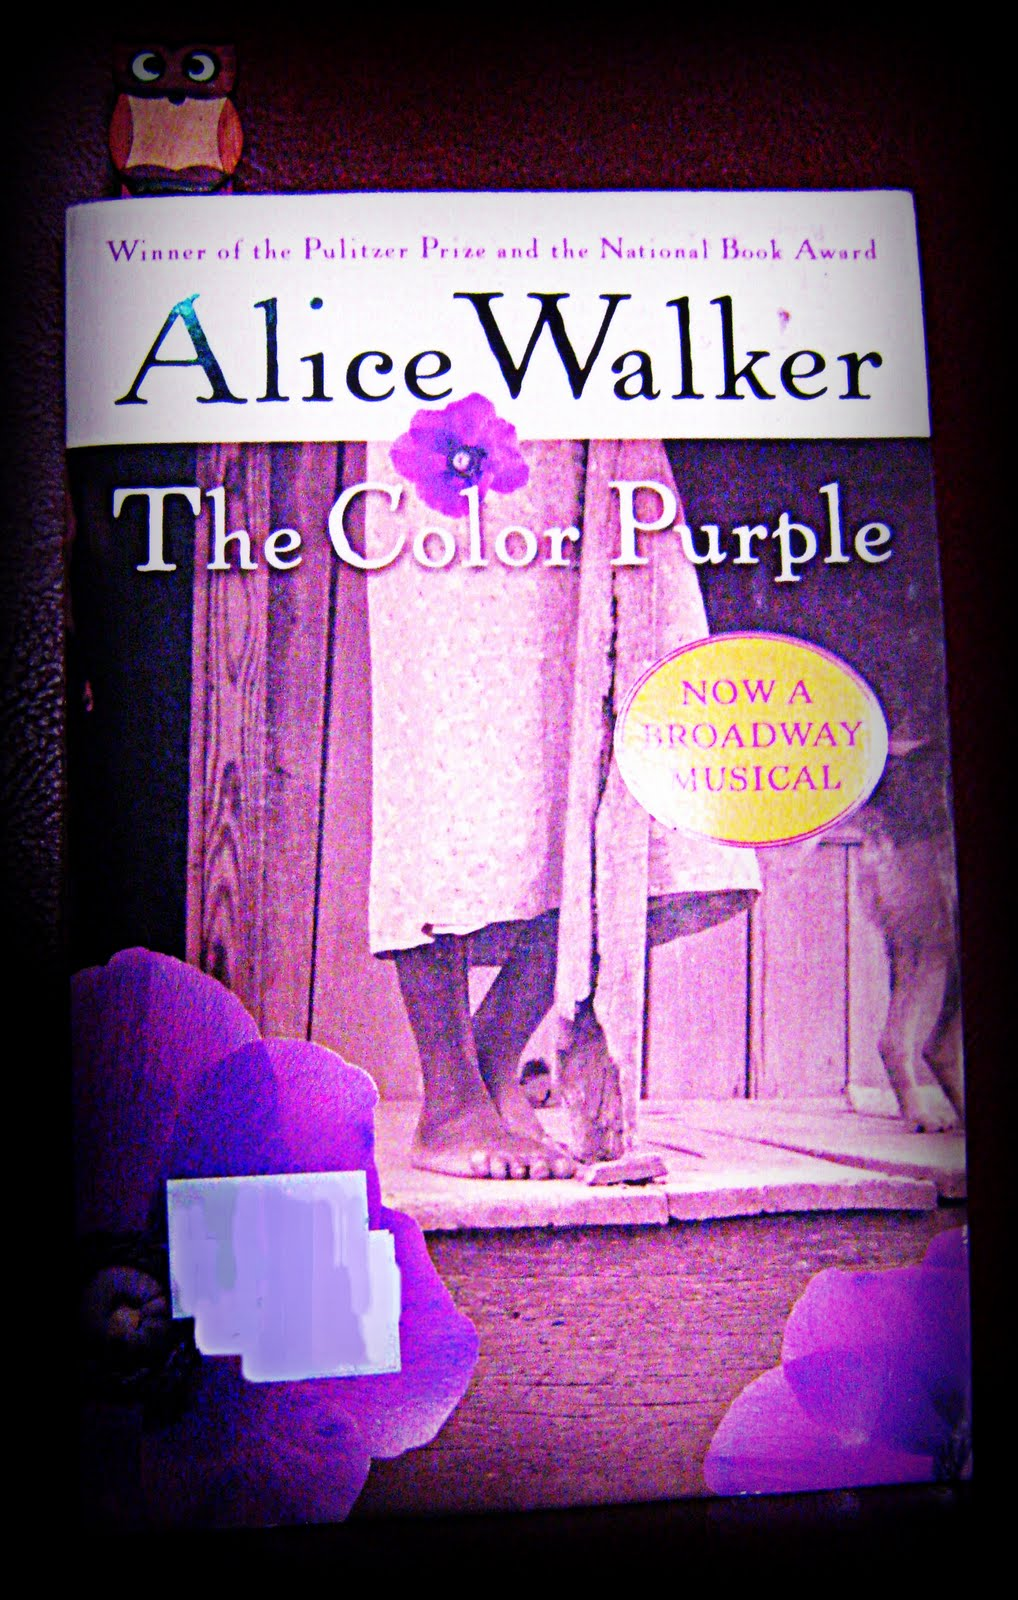 a look at life in the novel the color purple by alice walker The life and work of alice walker alice walker is one of the most famous and beloved writers of our time, and this is largely due to the novel the color purple.